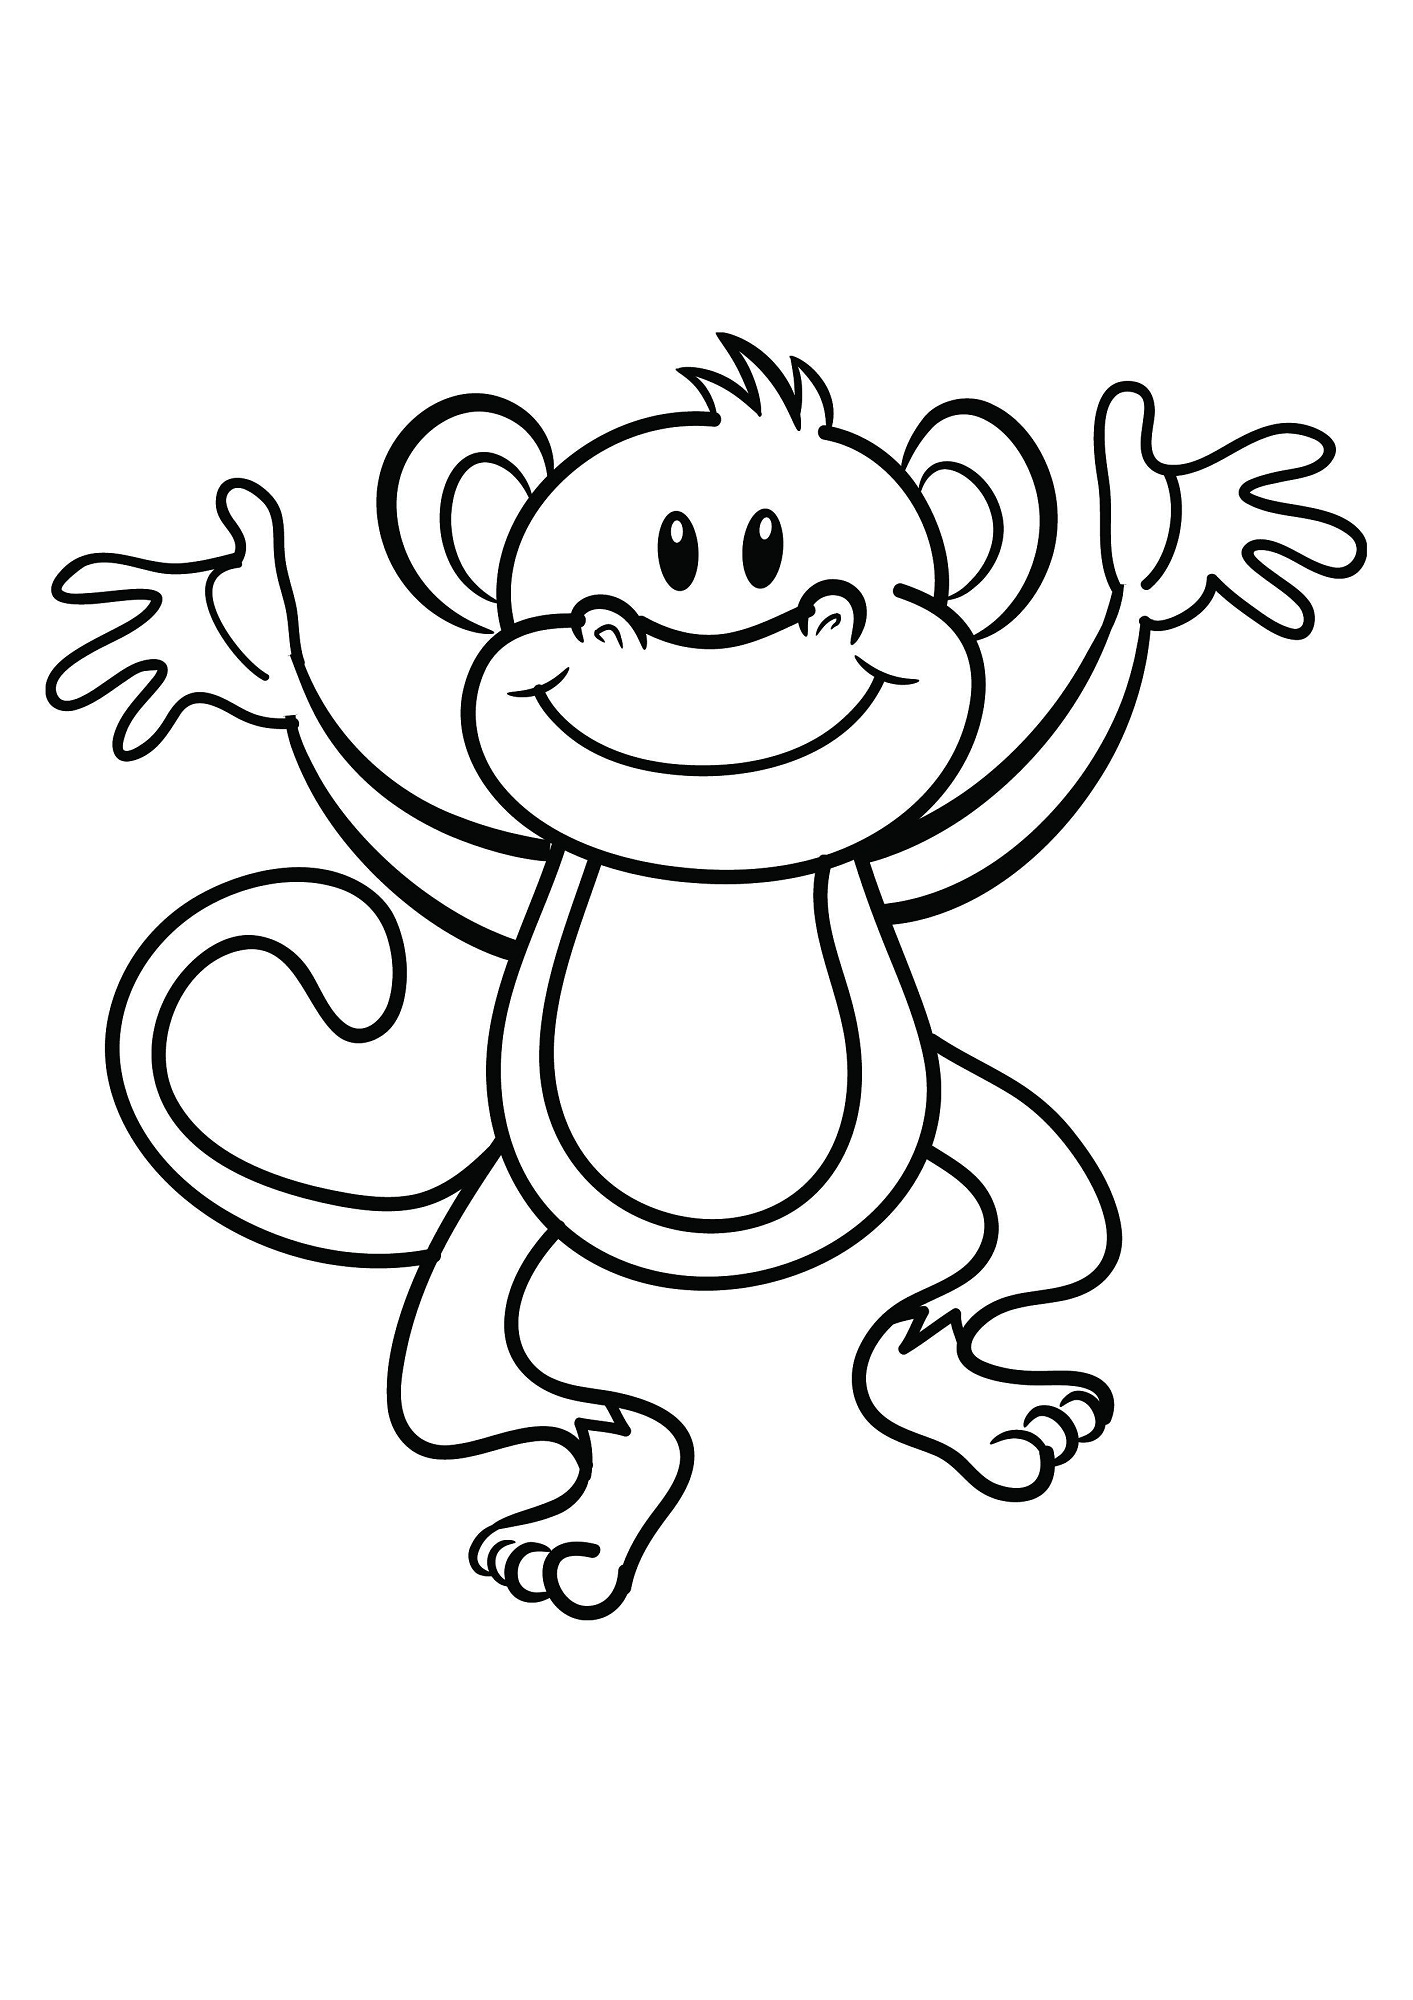 colouring pictures of monkeys monkeys to download for free monkeys kids coloring pages of monkeys colouring pictures